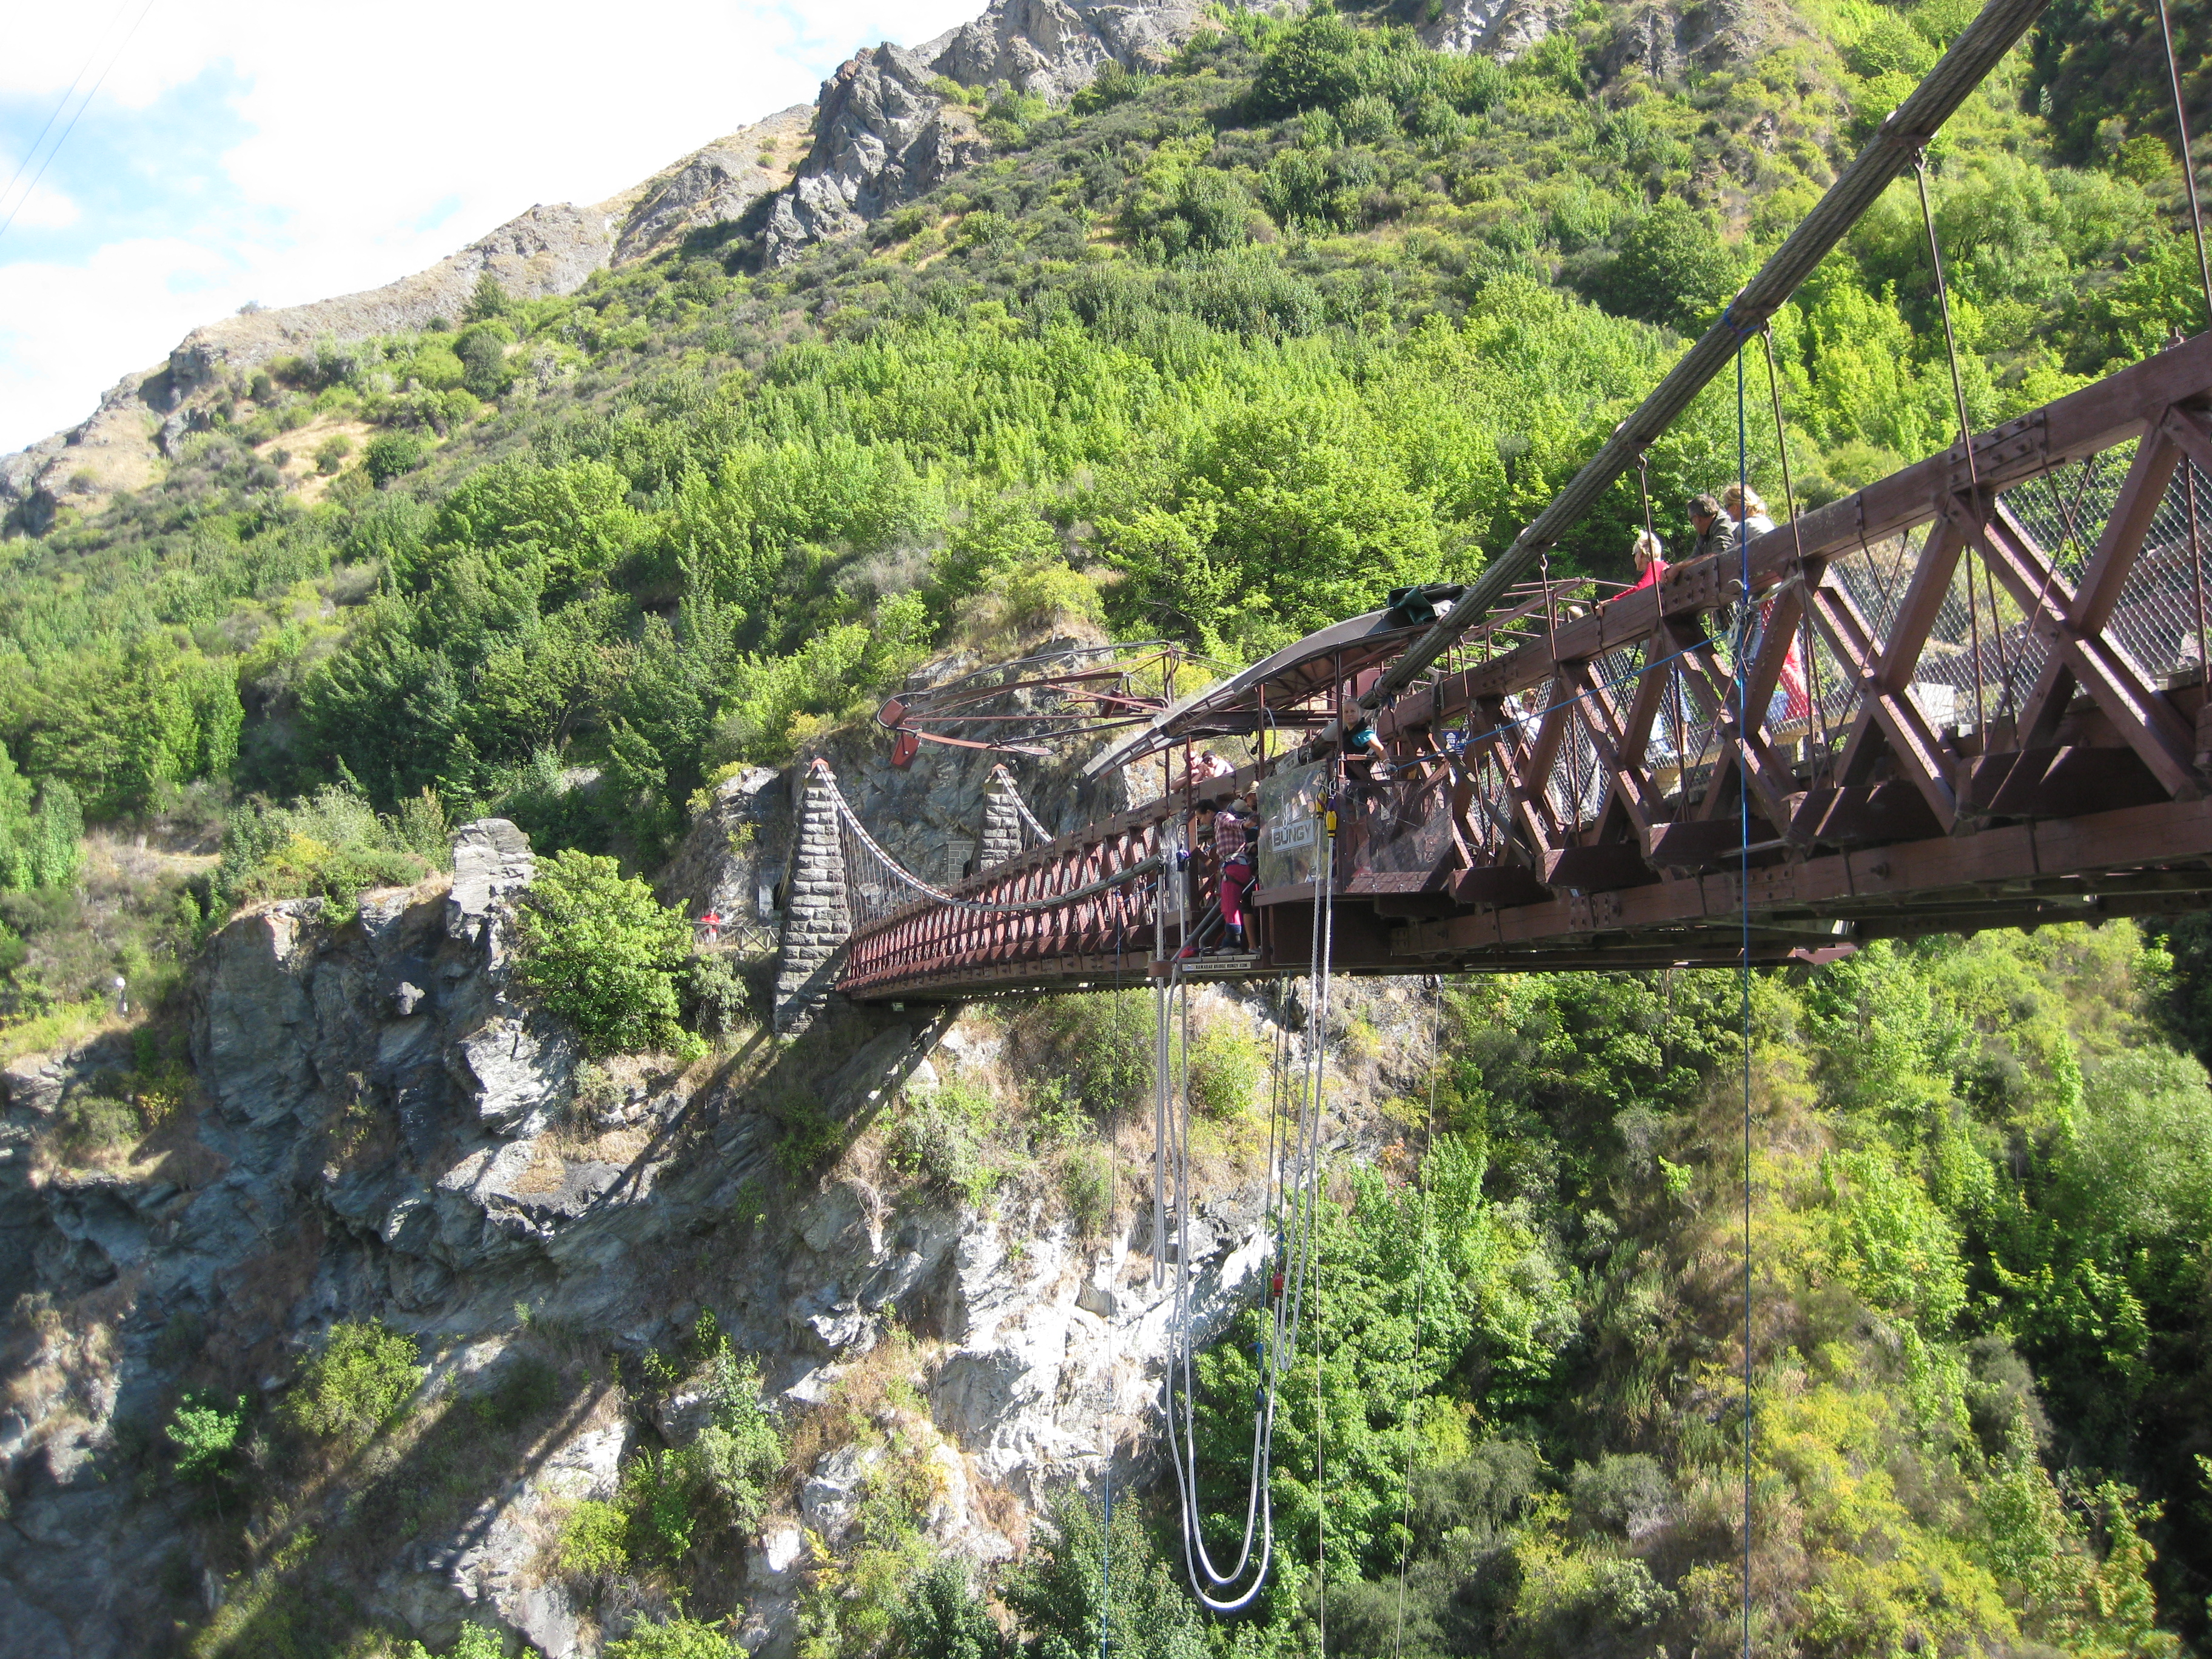 Queenstown Bungy Jumping